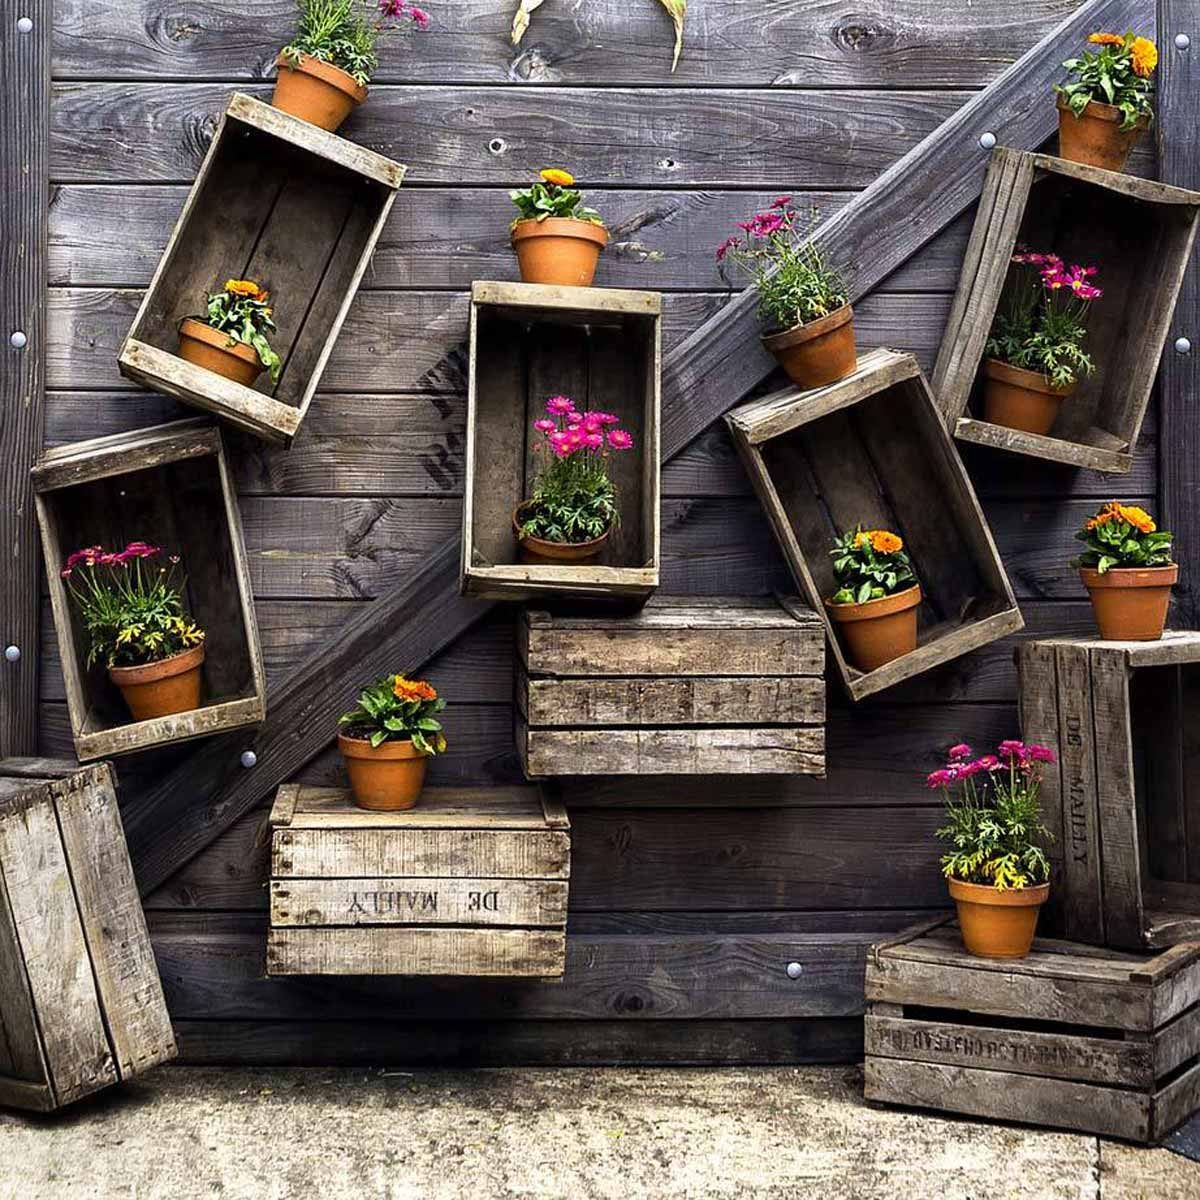 Add New Life to Your Shed with Exotic Plants